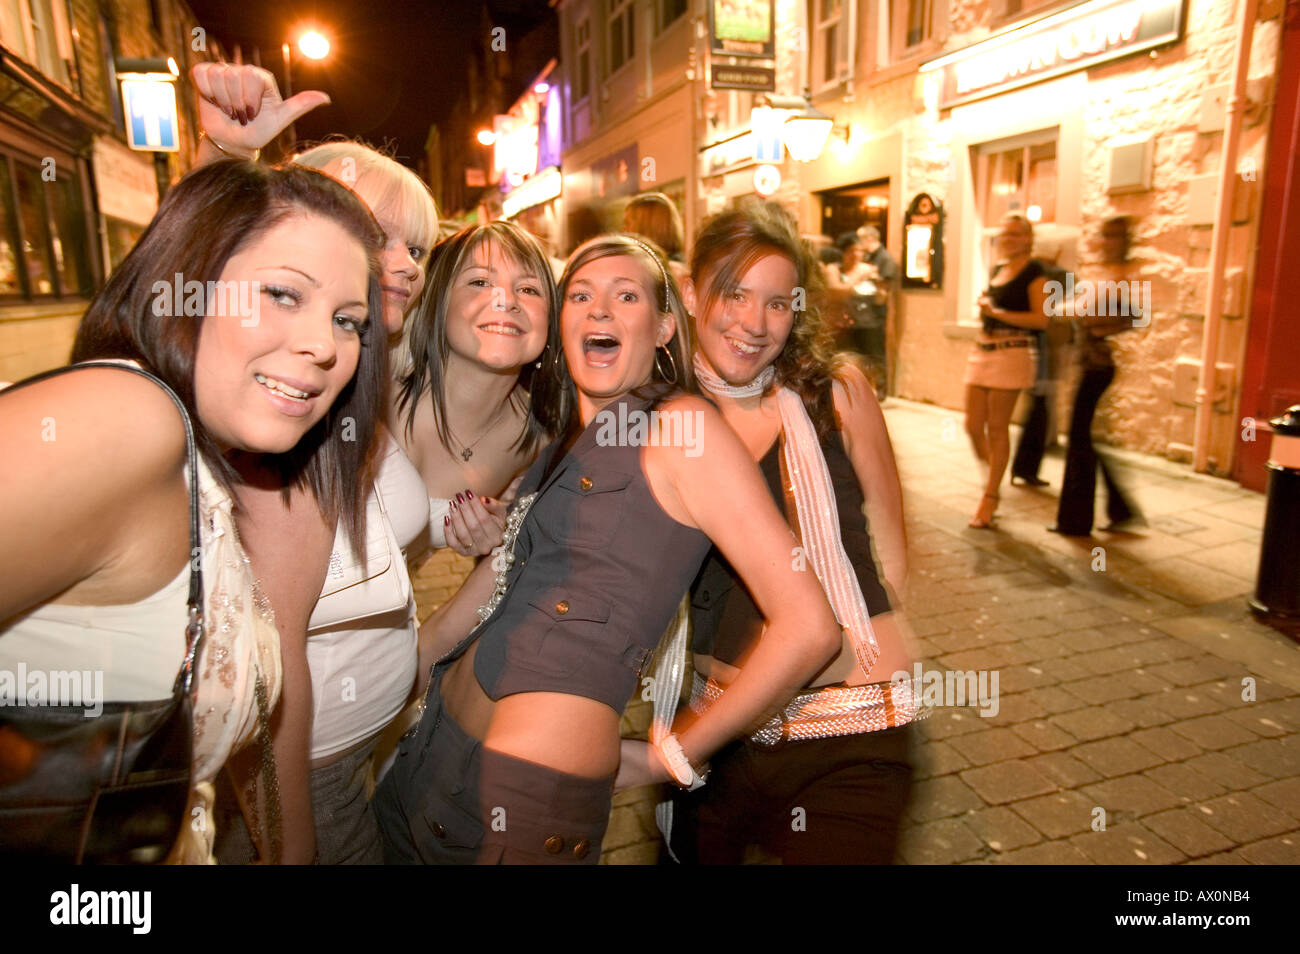 ohio city milf women Some cities might encourage dating by offering plentiful nightlife options and   but the share may be higher or lower in every city, and the ratio of women to men  also will differ in each  22, columbus, oh, 5861, 25, 47, 35.